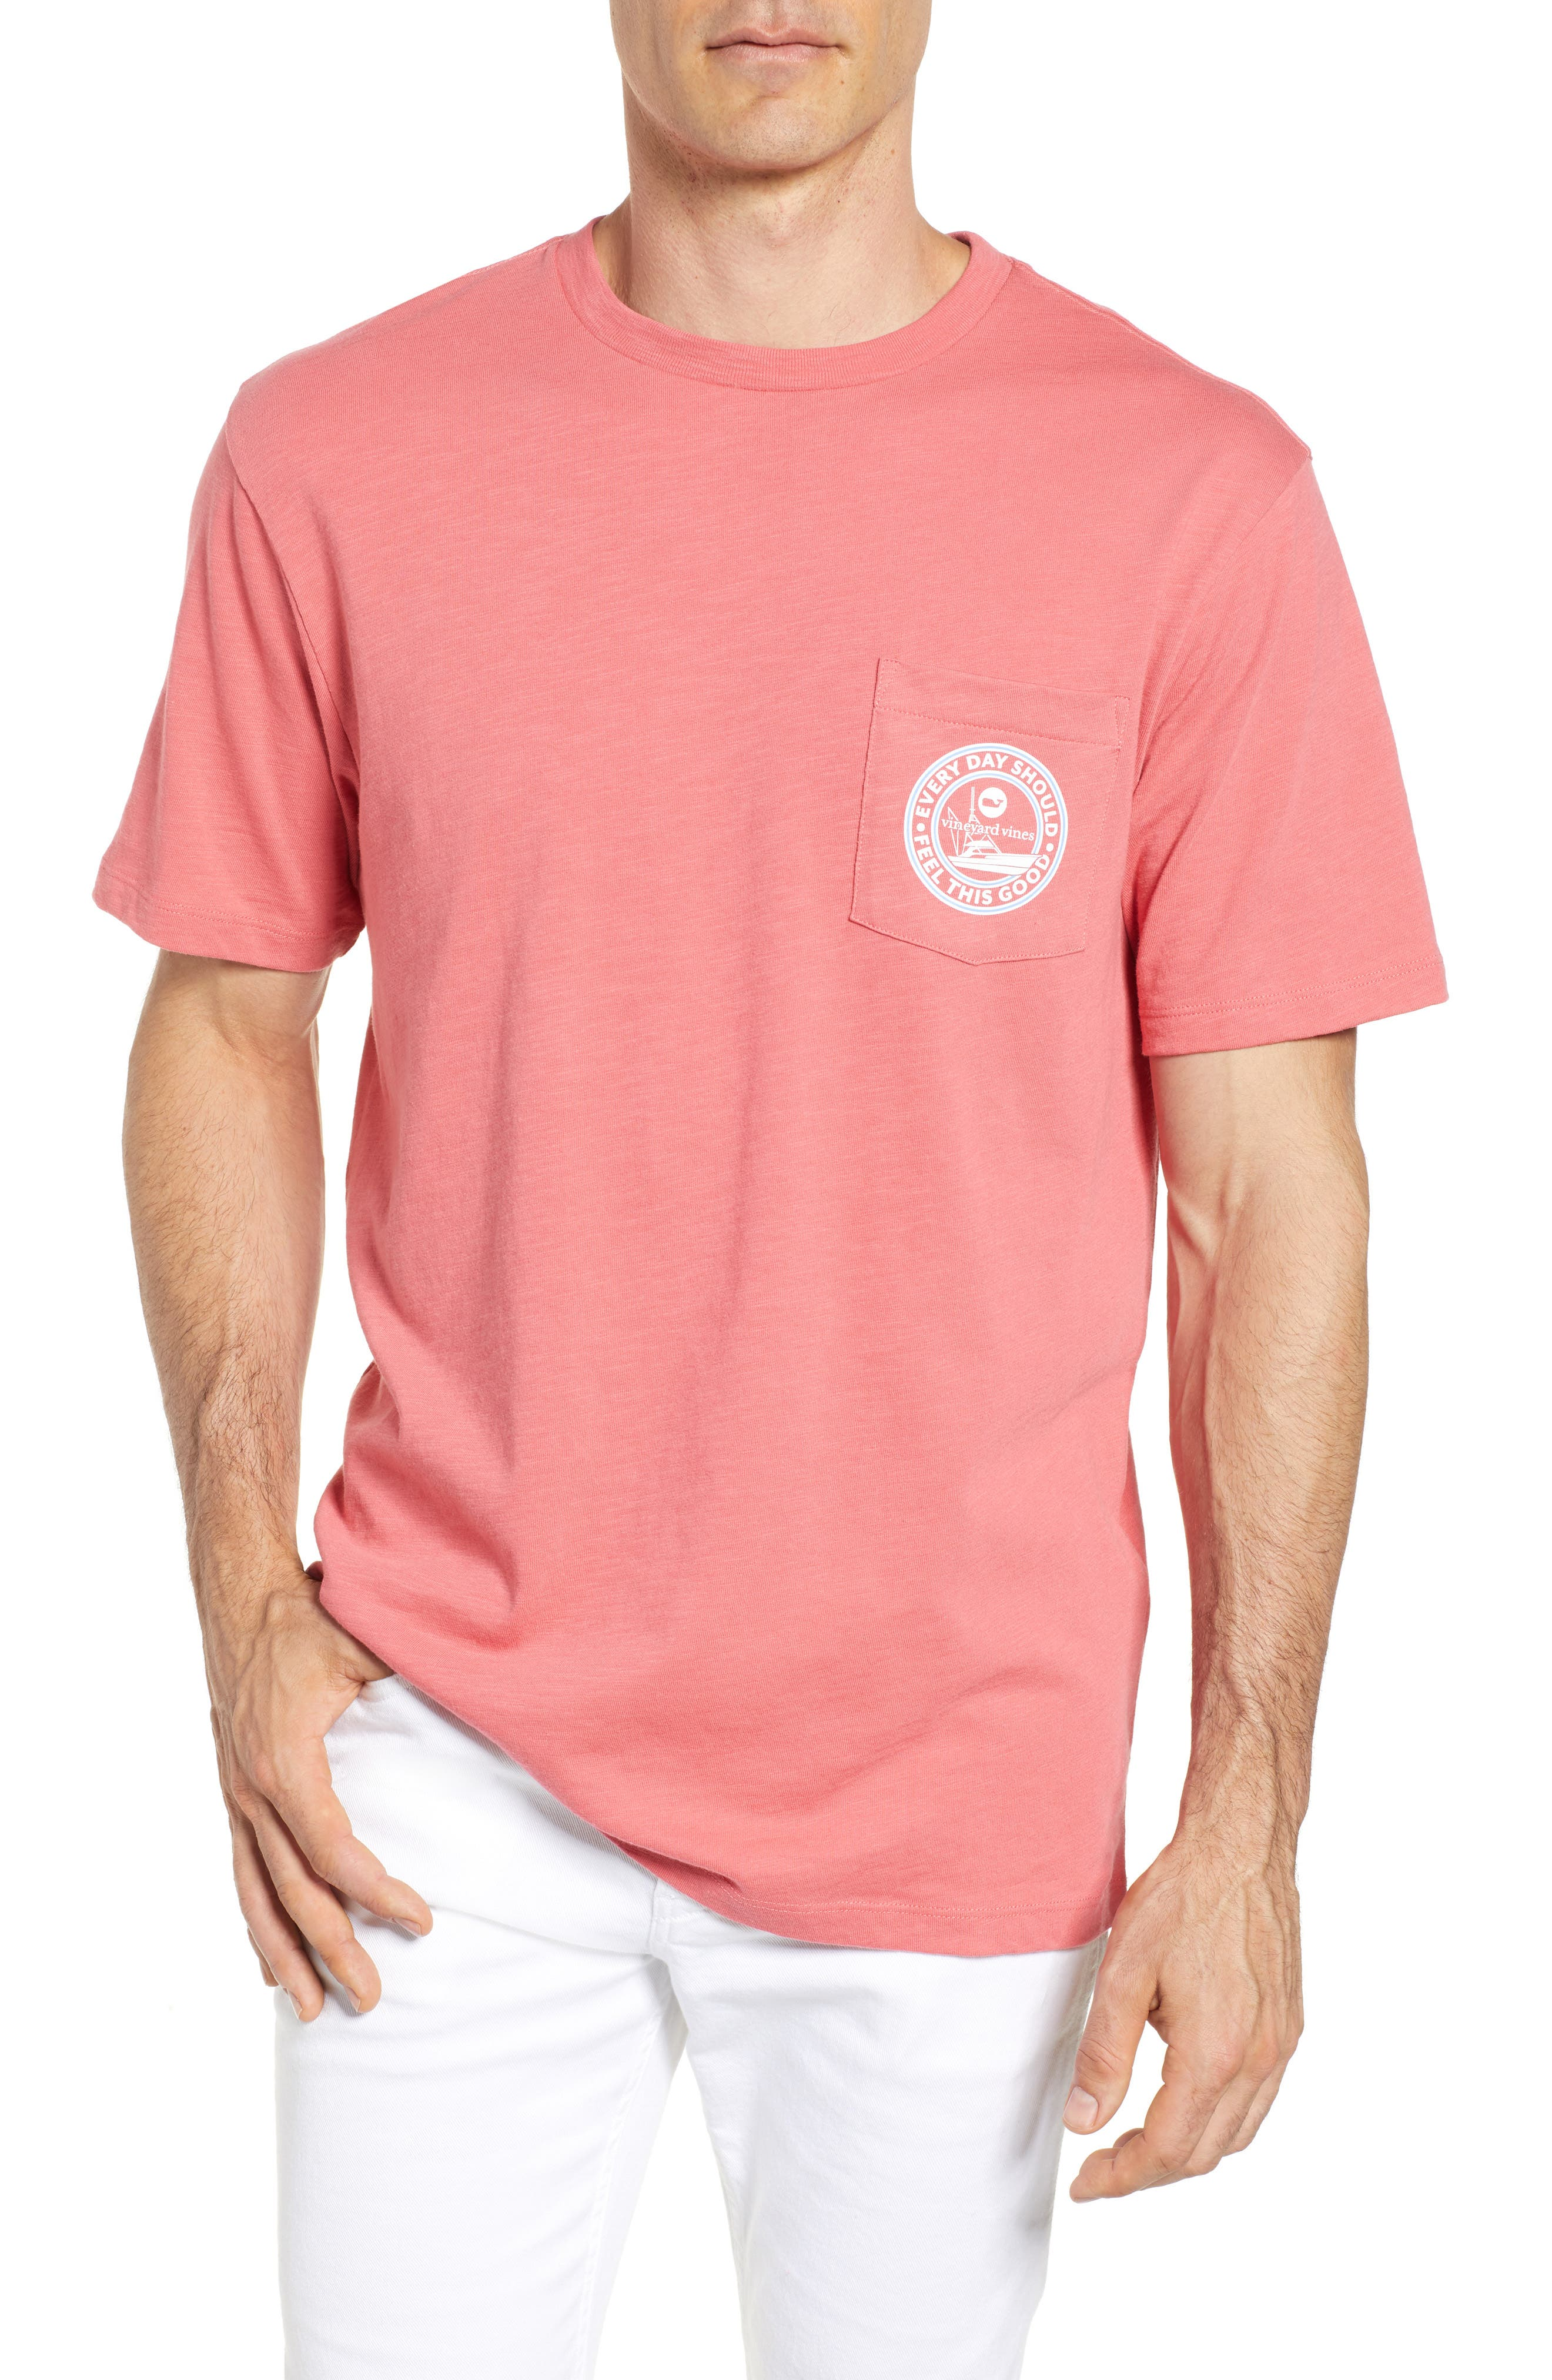 VINEYARD VINES,                             Every Day Should Feel This Good Pocket T-Shirt,                             Main thumbnail 1, color,                             628